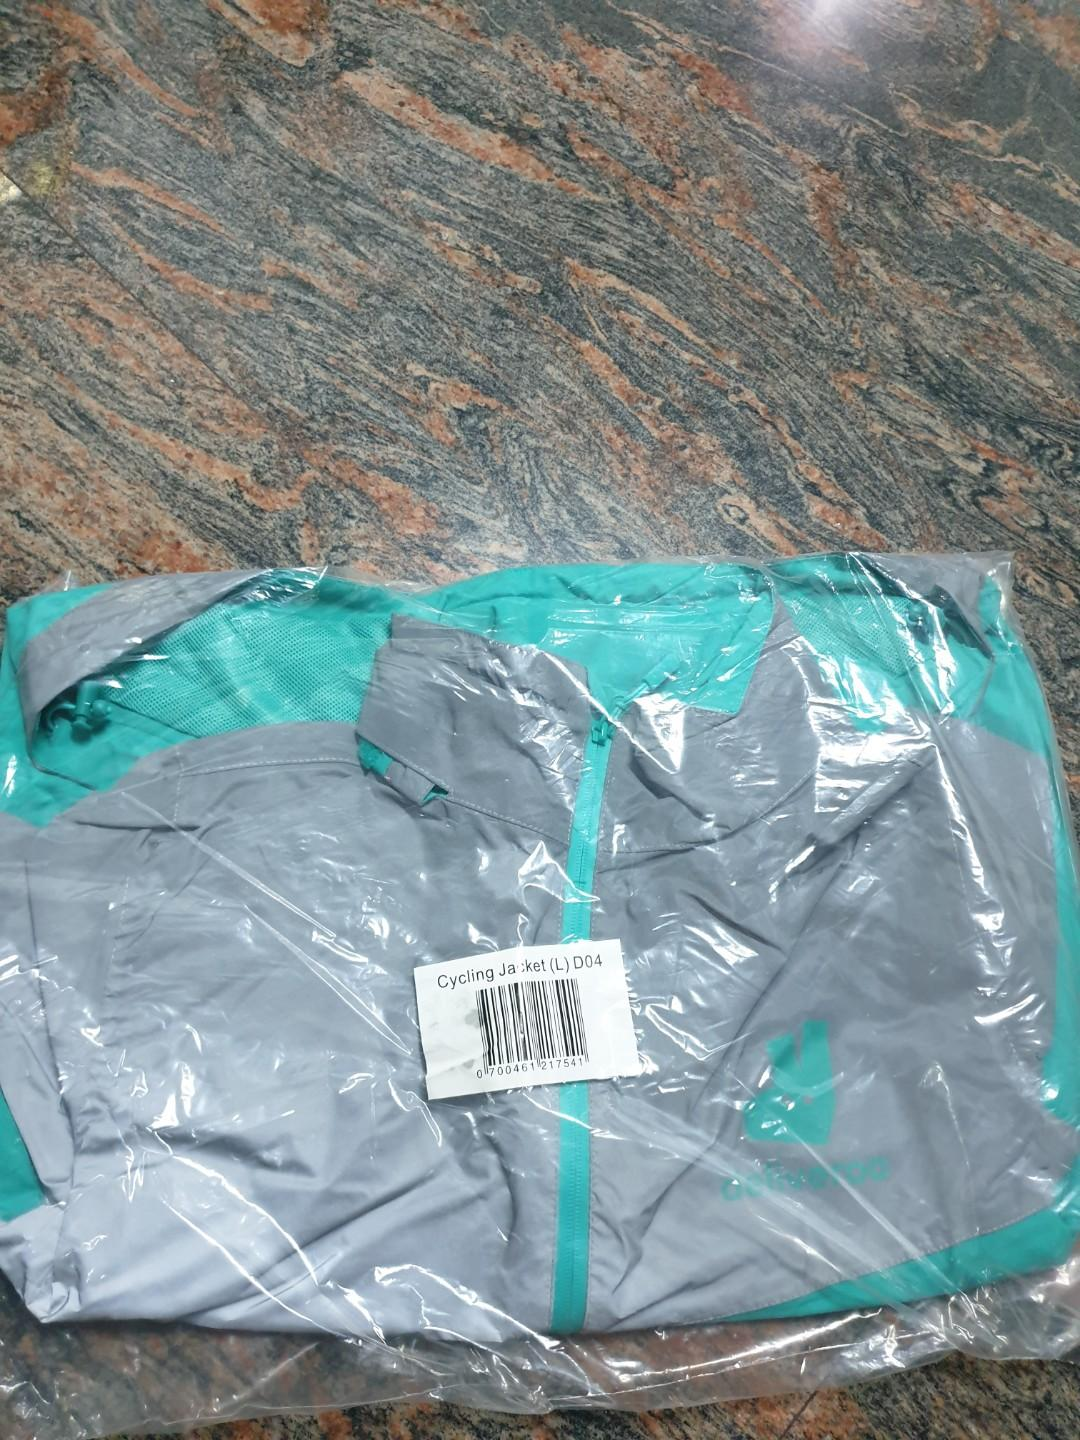 Deliveroo thermal  bag